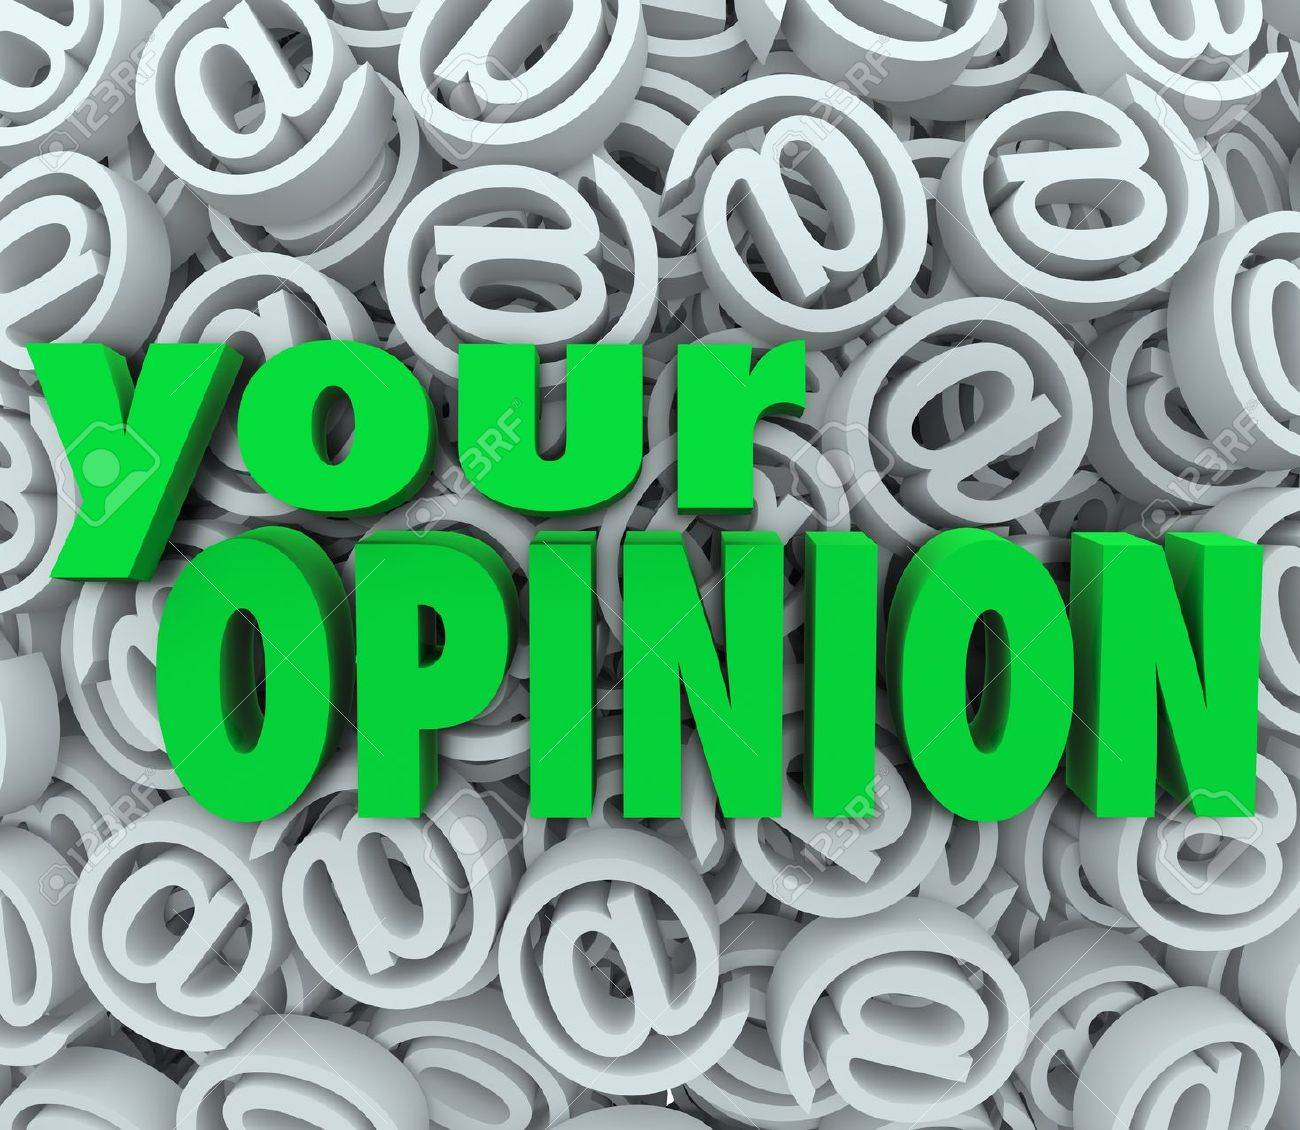 The words Your Opinion on a background of 3D at or email symbol signs to illustrate feedback and contacting a business or organization to provide comments or suggestions Stock Photo - 21130813